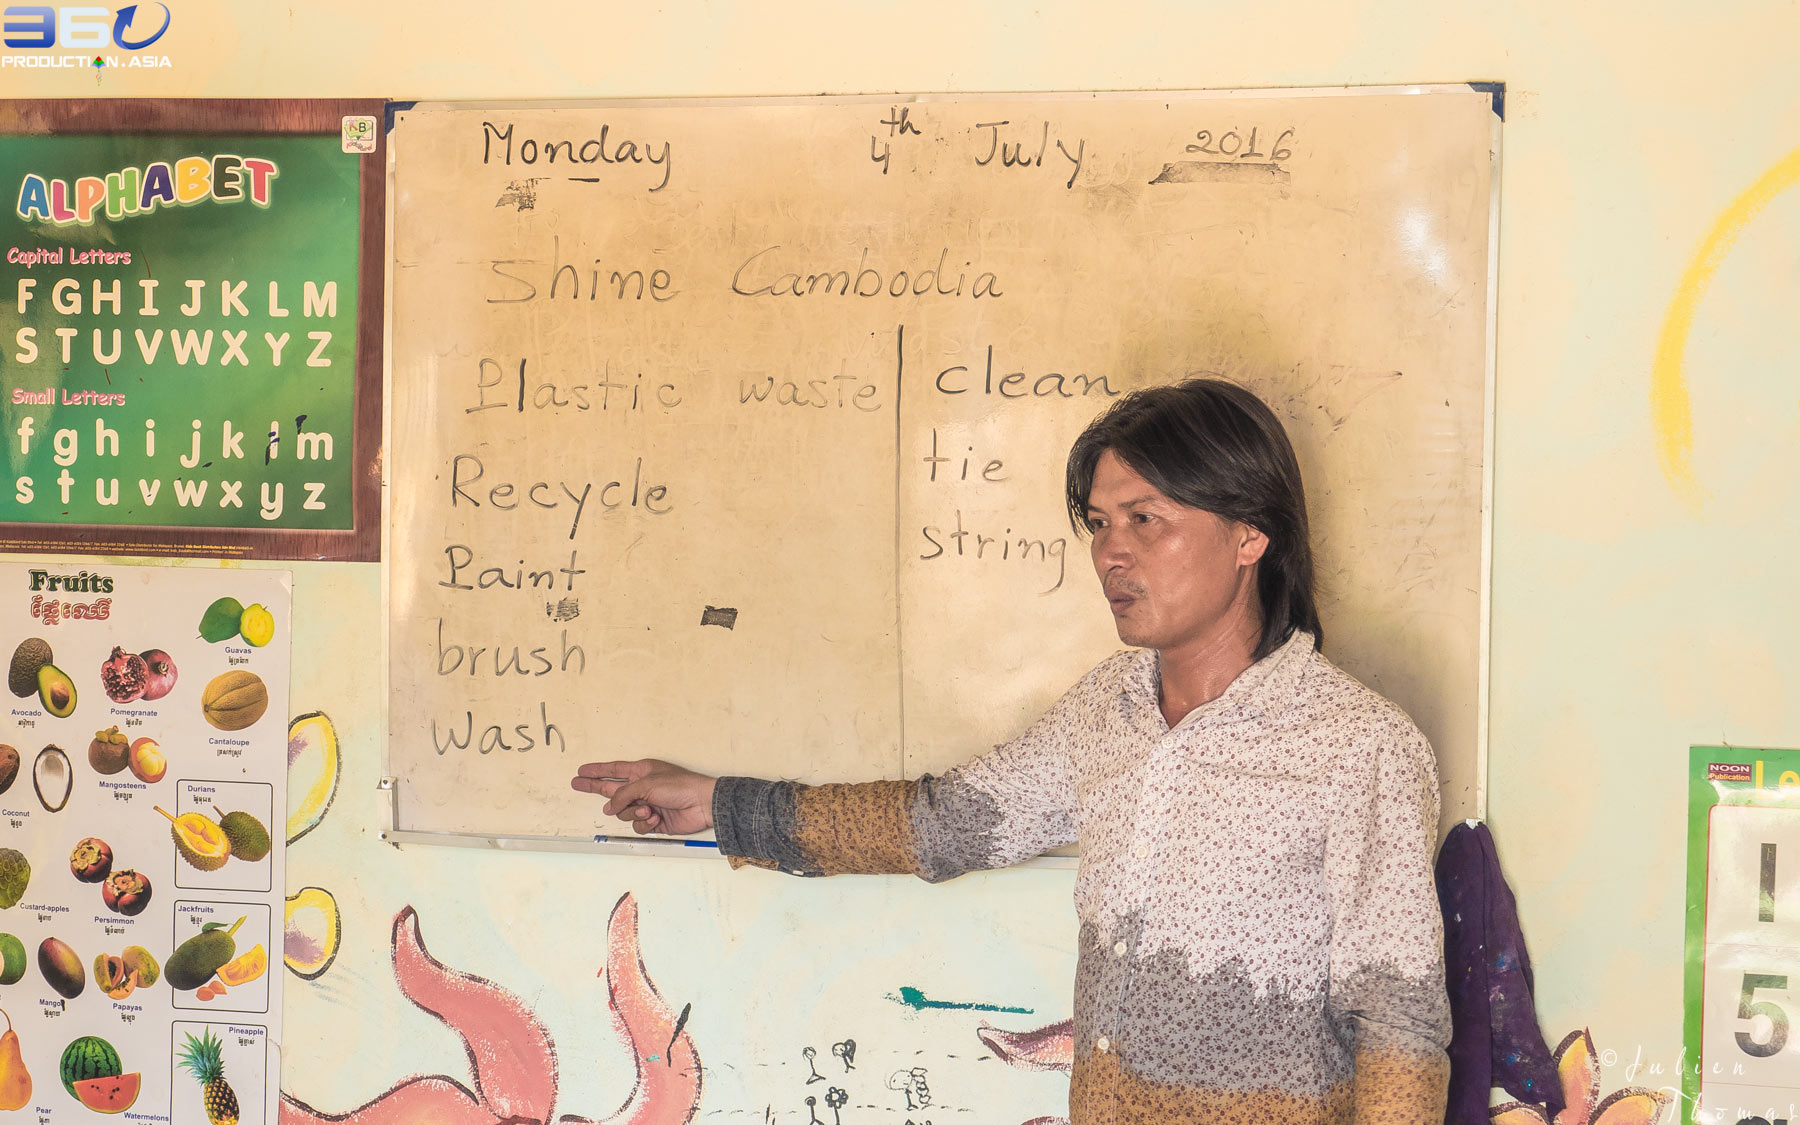 Khmer teacher teaches new words and ecological meanings to his schoolchildren to raise their awareness about the problems of plastic waste pollution in Cambodia.